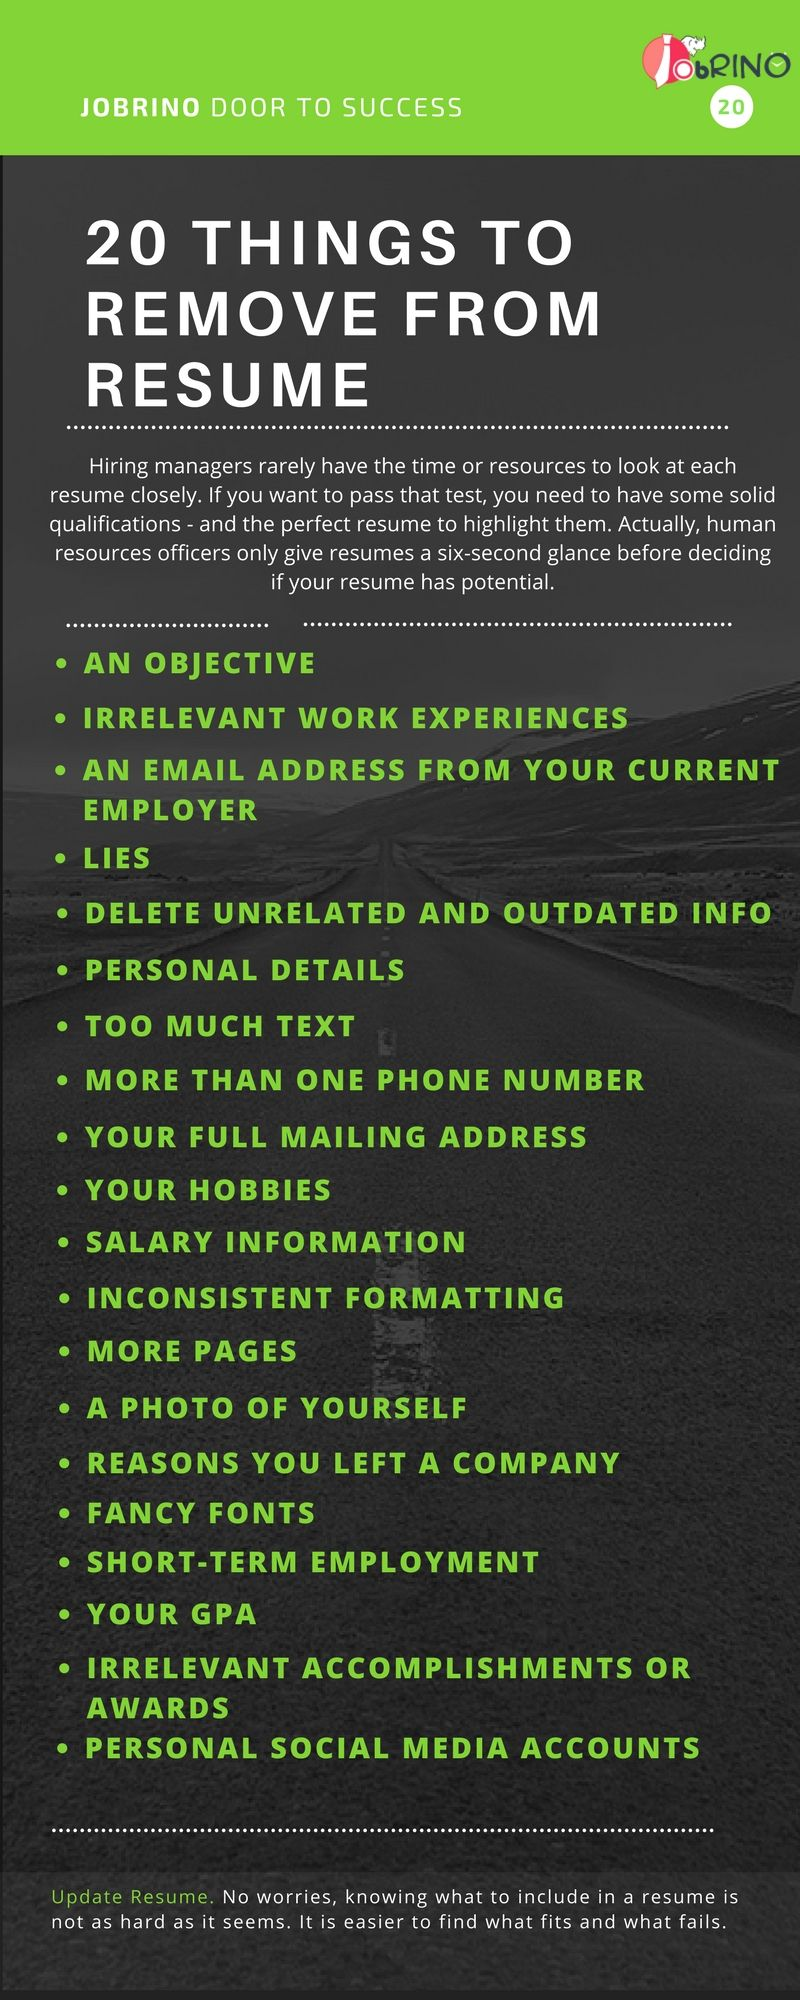 20 Things to remove from the resume